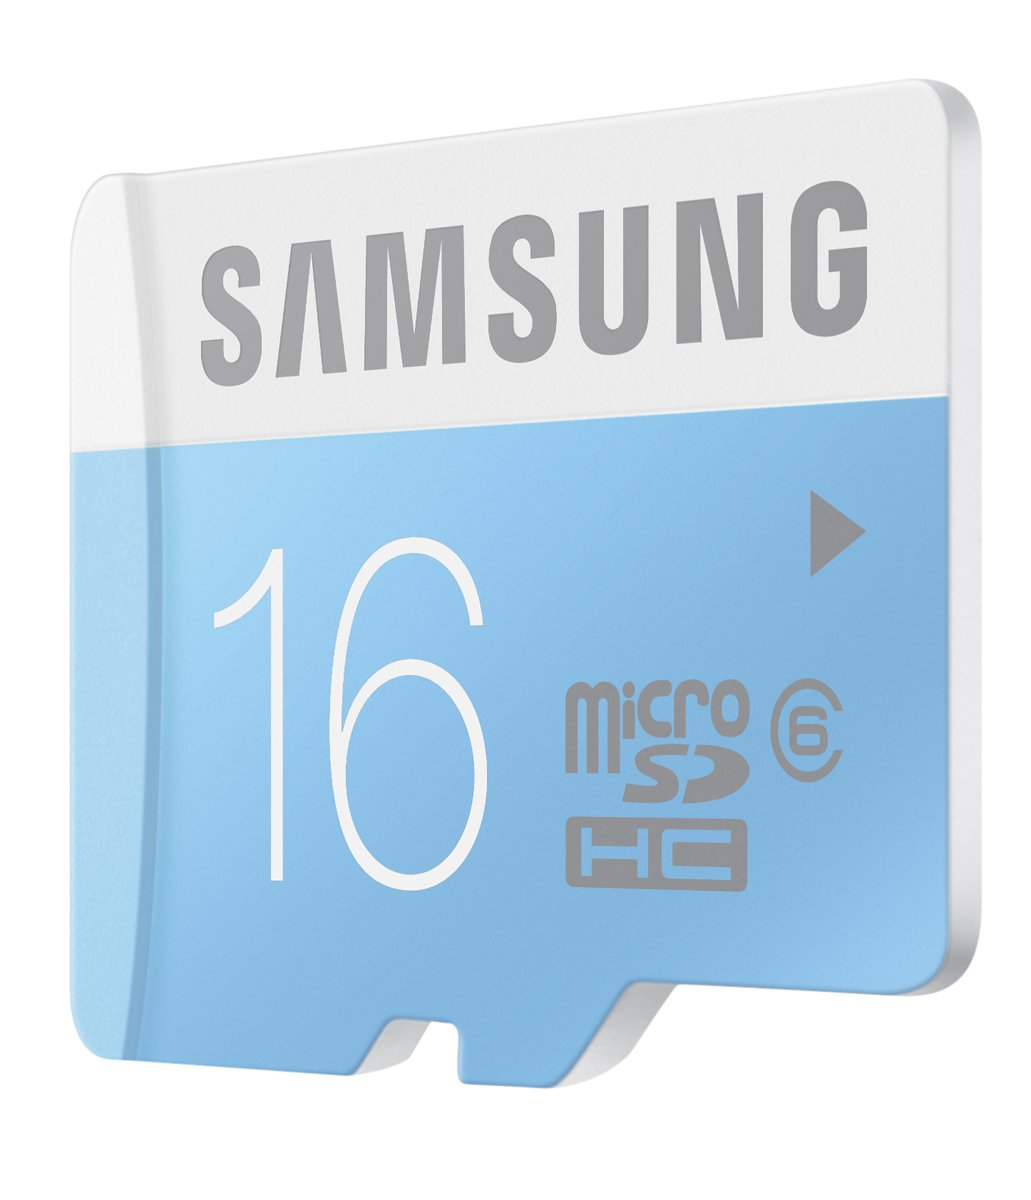 32 gig memory - Amazon Com Samsung 16gb Class 6 Micro Sdhc Up To 24mb S With Adapter Mb Ms16da Am Computers Accessories